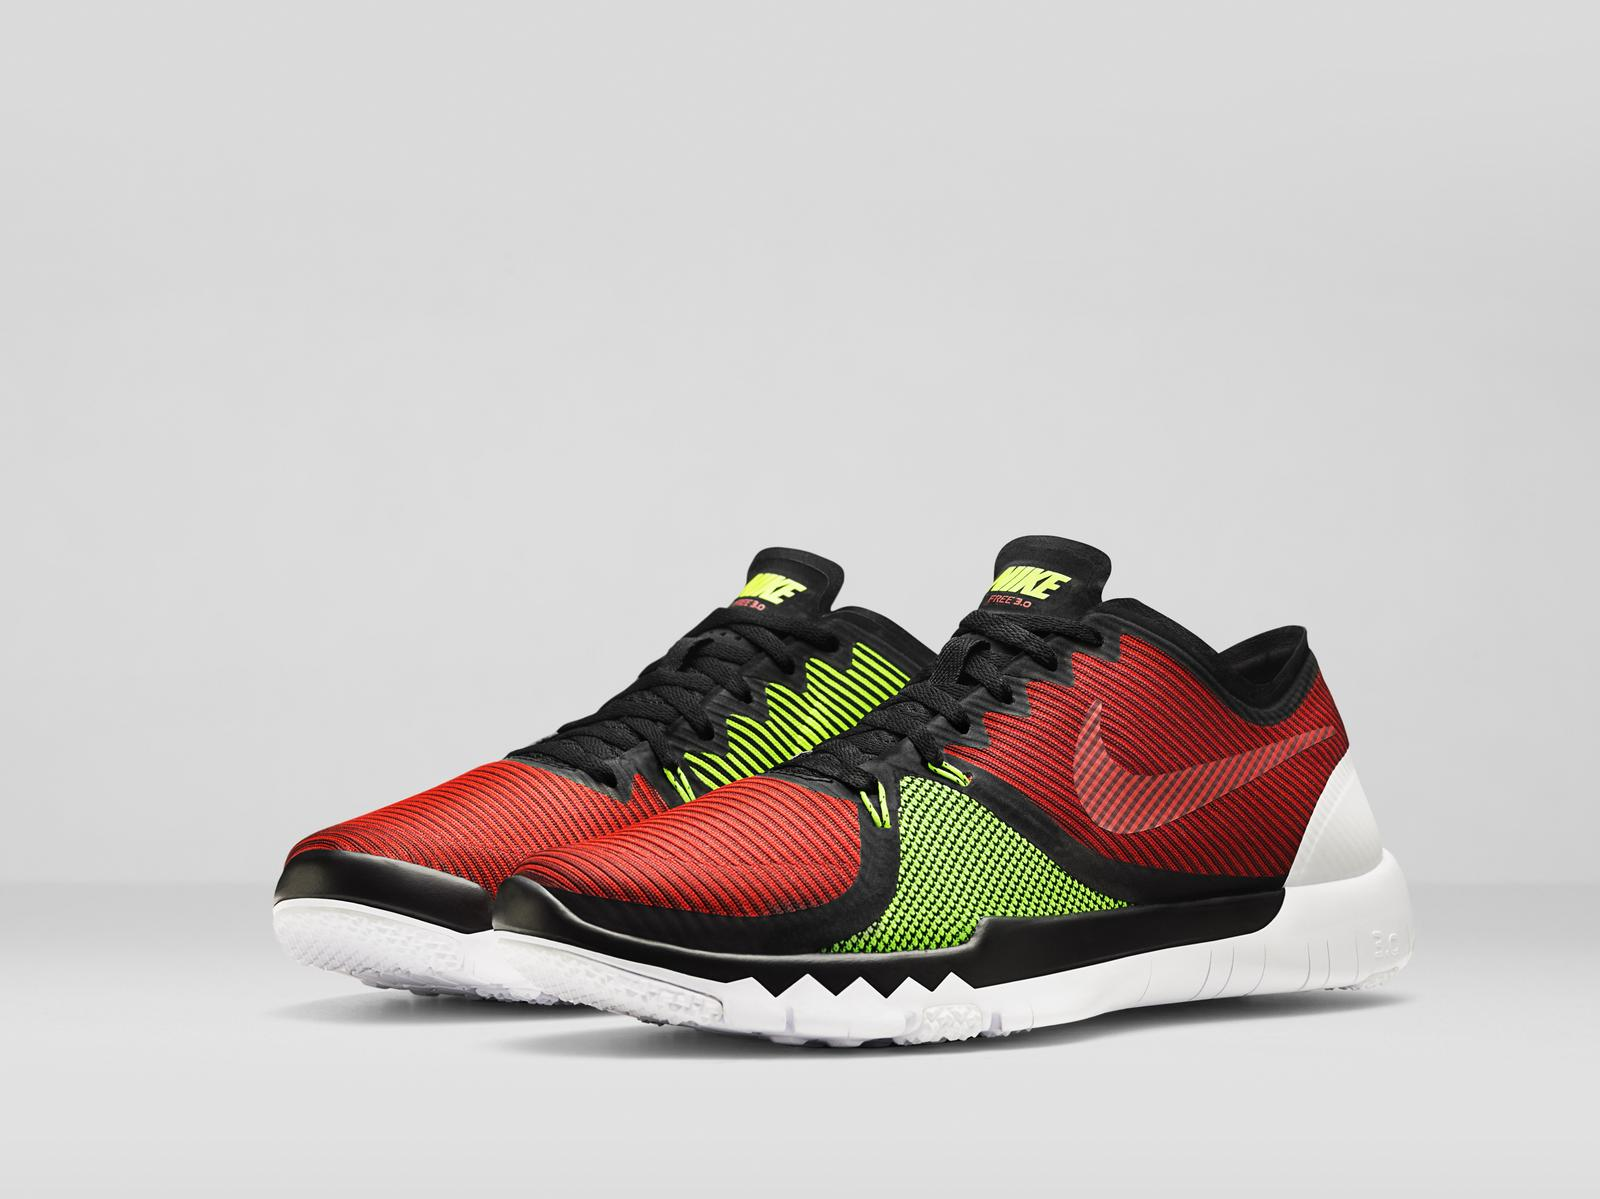 Nike Strength Training Shoes